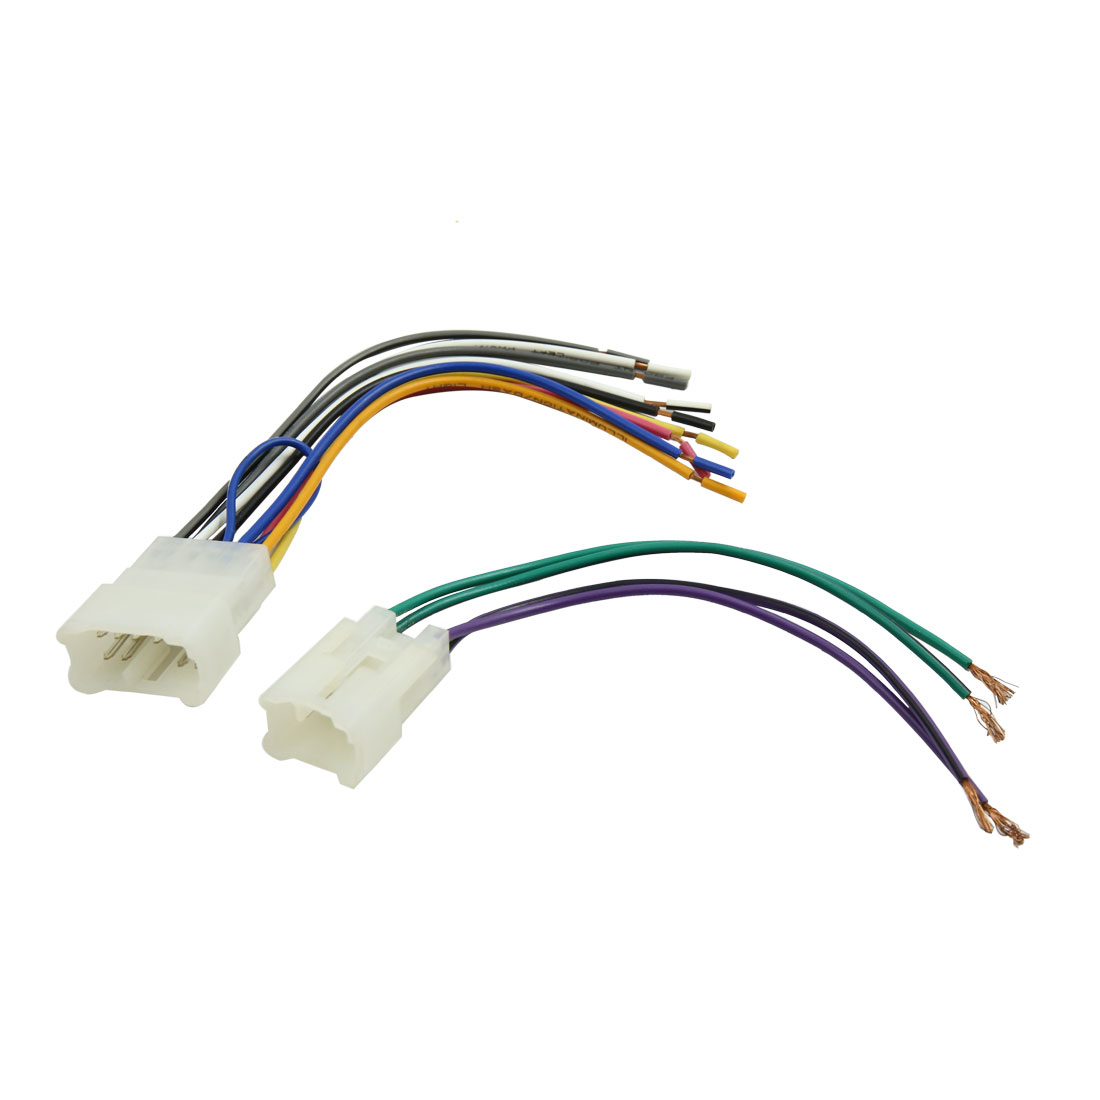 Wiring Harness Adapter Walmart - Wiring Diagram Home on